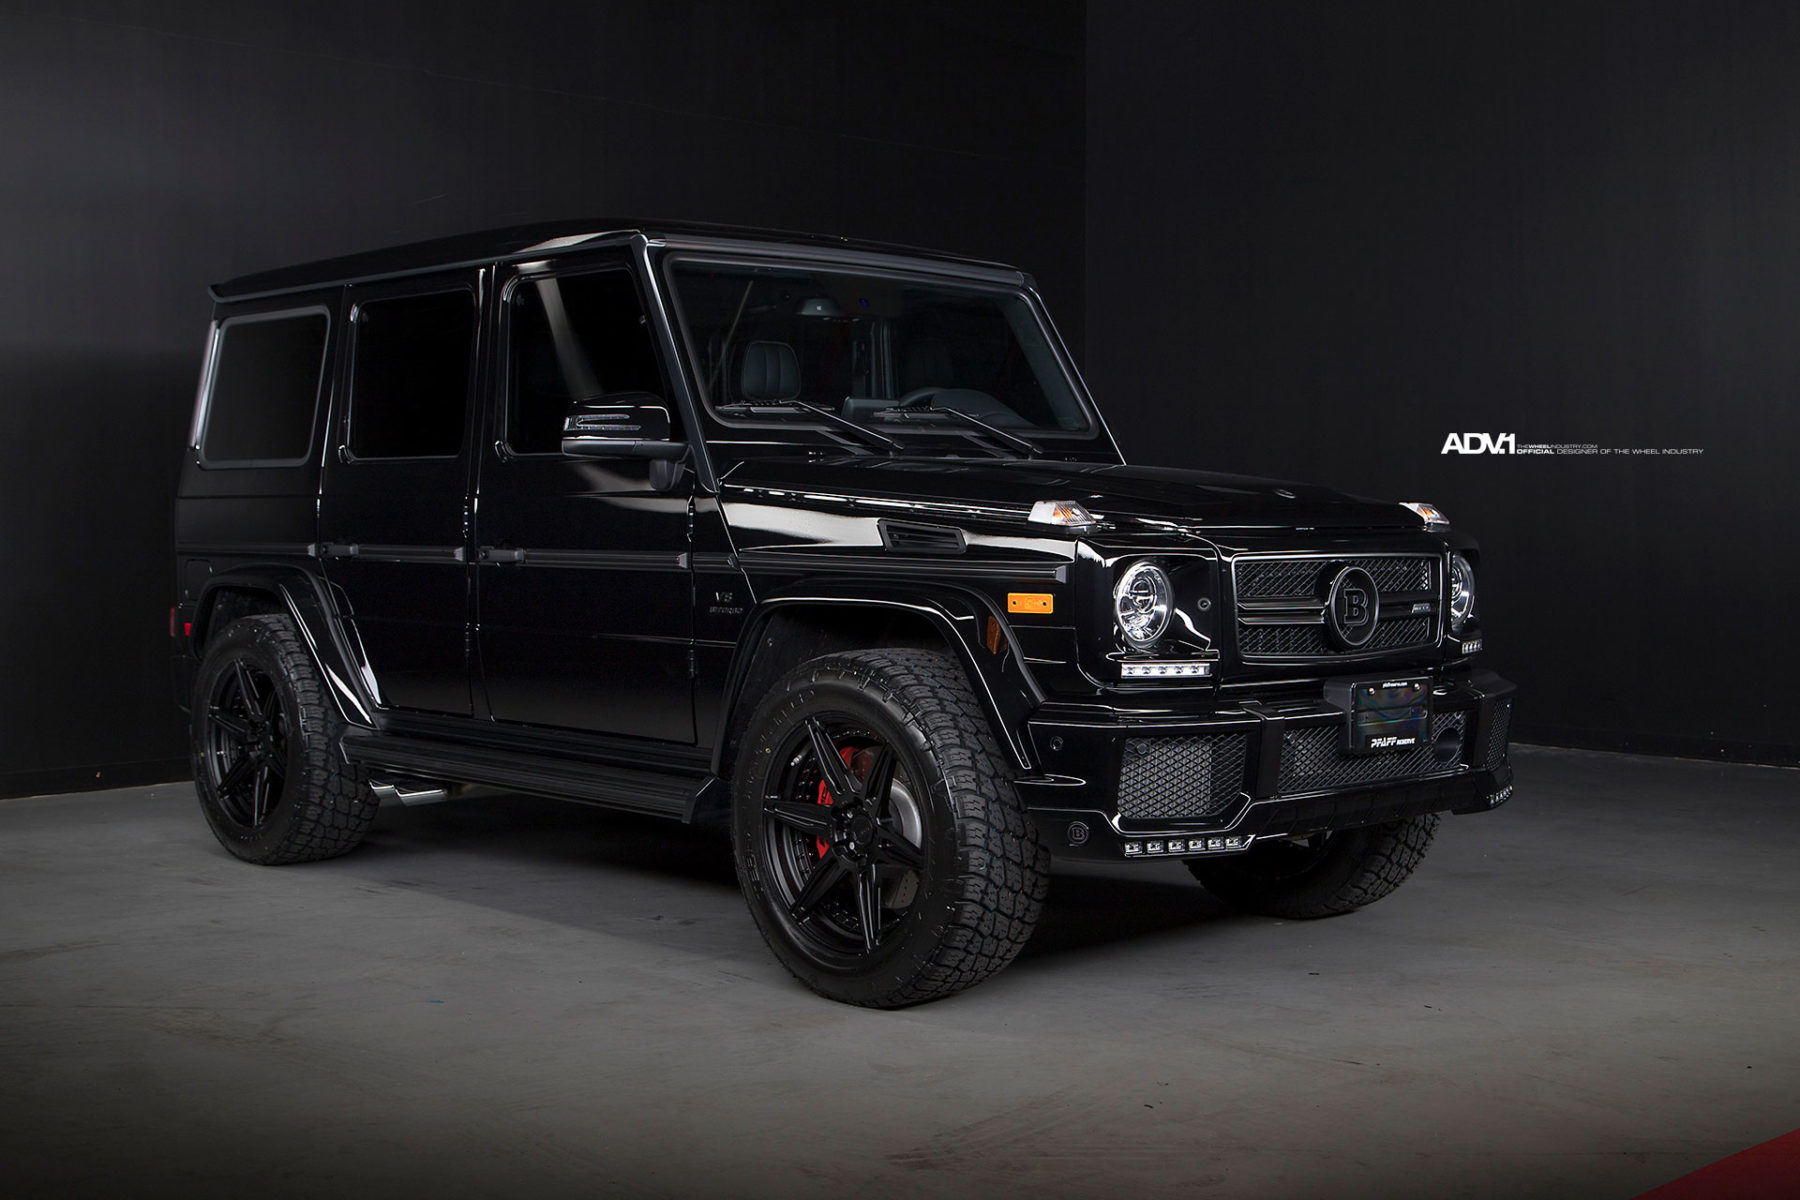 Black brabus mercedes benz g63 amg adv6 m v2 cs wheels for Mercedes benz g class brabus